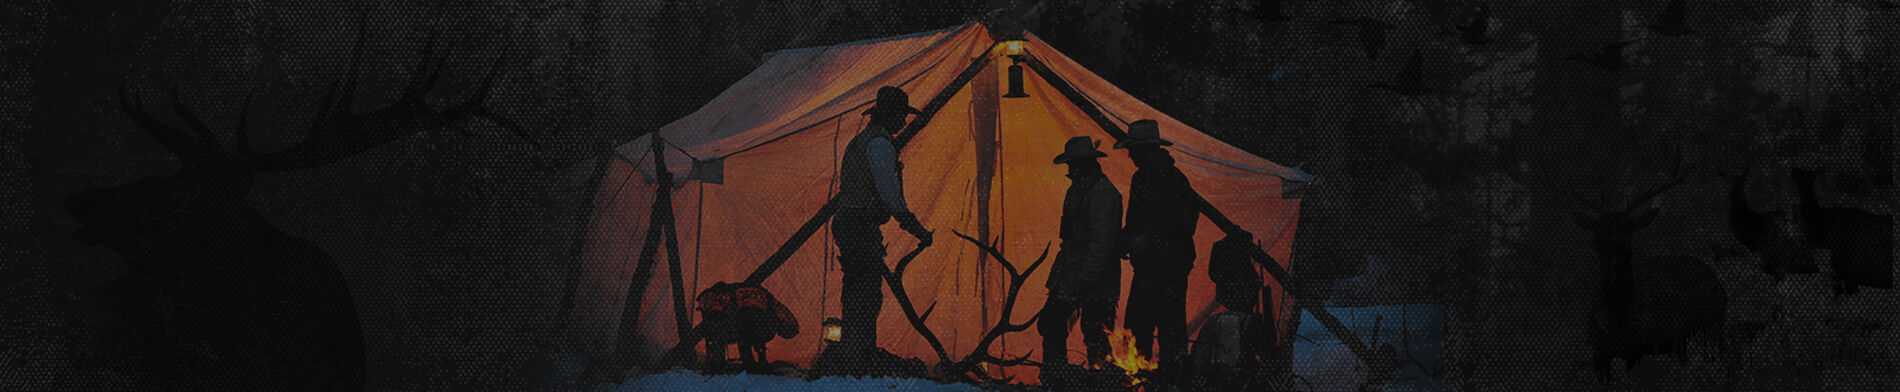 hunters backlit in front of a tent